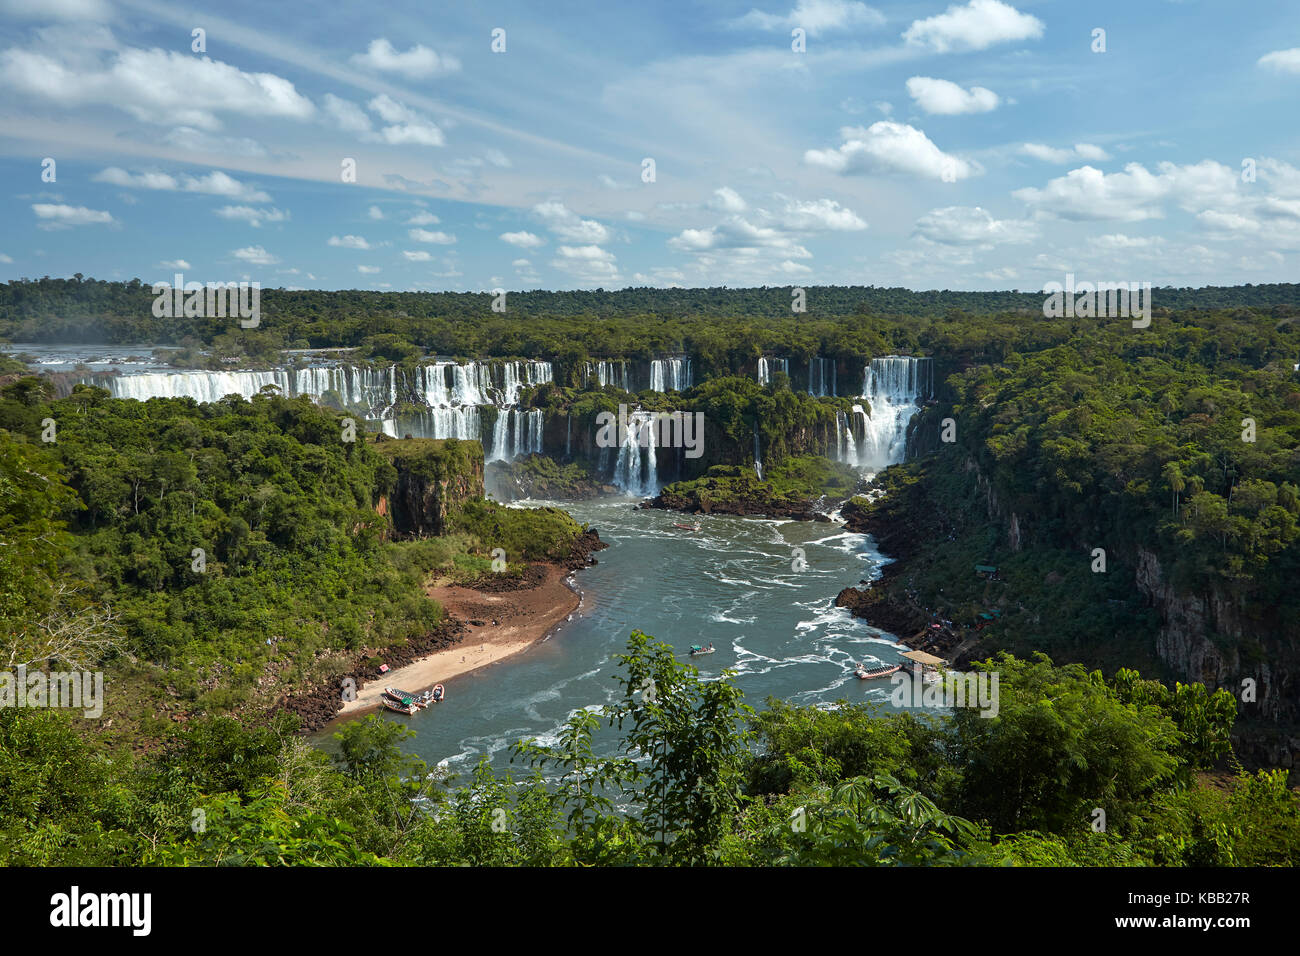 Iguazu Falls on Argentina side, and tourist boats on Iguazu River, Brazil - Argentina Border, South America - Stock Image